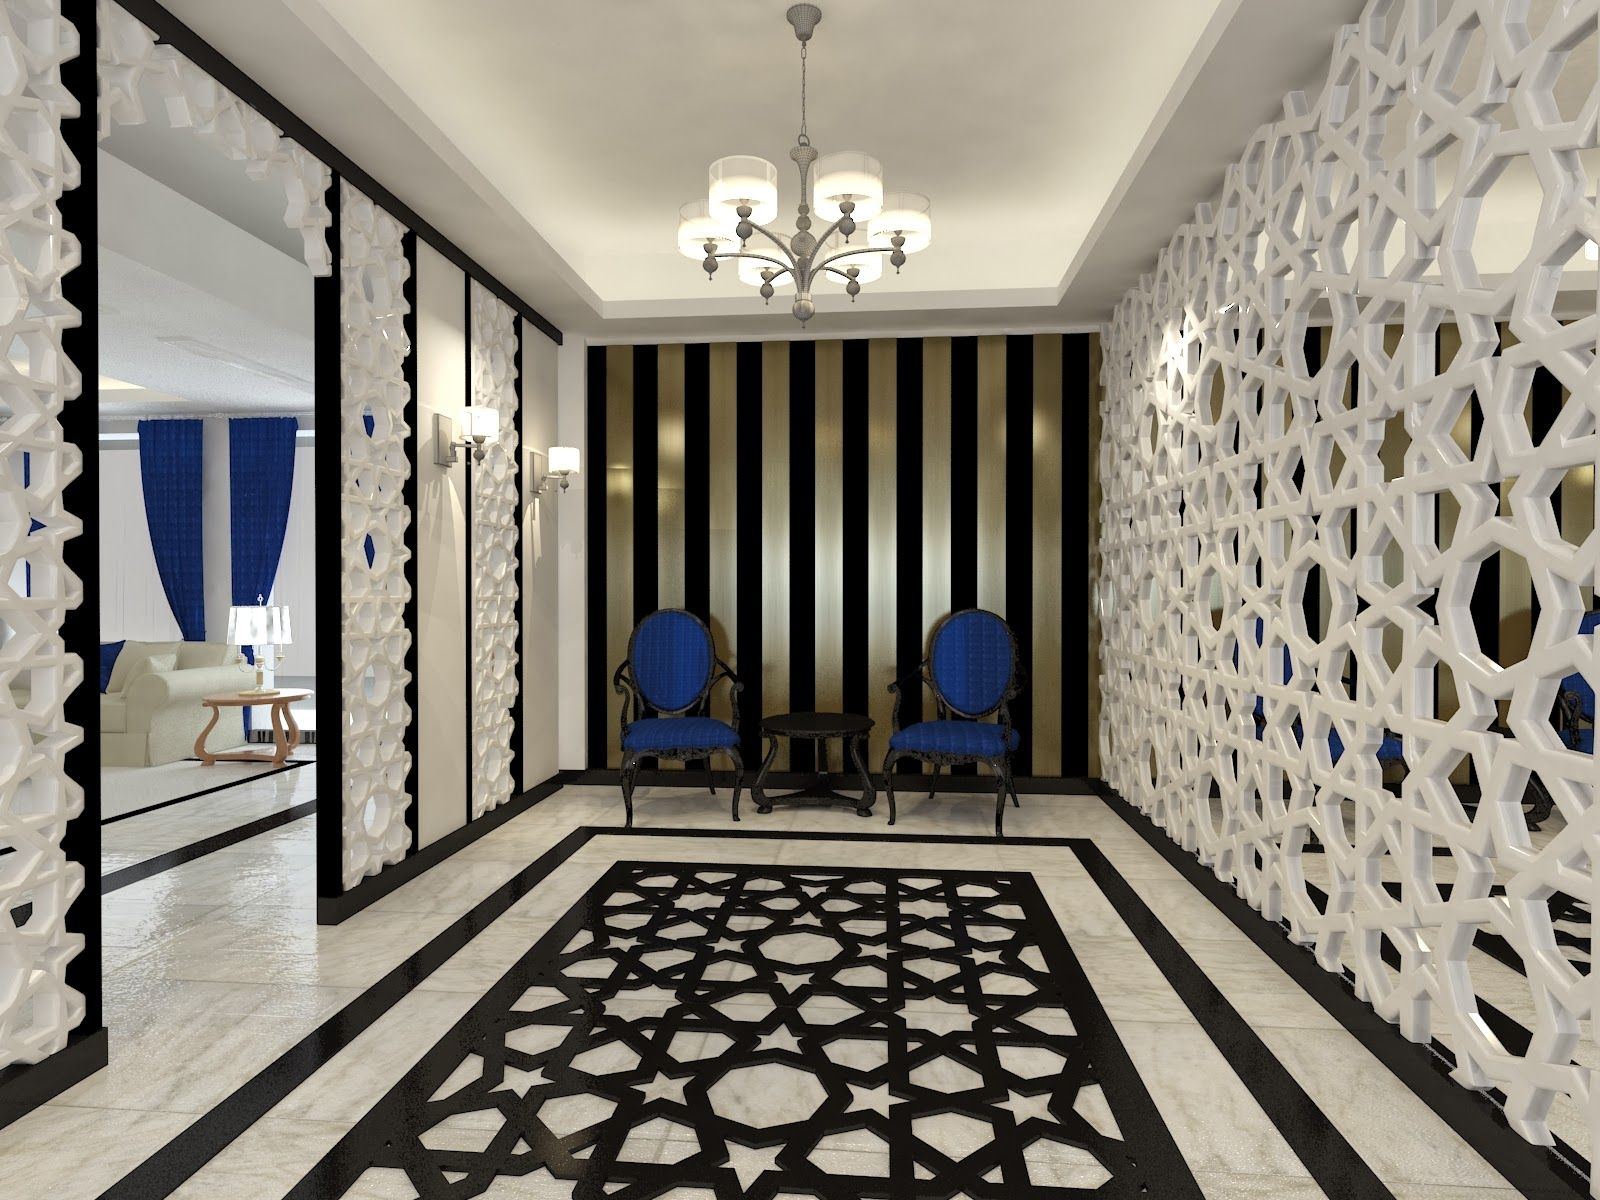 Islamic modern interior design google search banks for Modern architectural interior designs